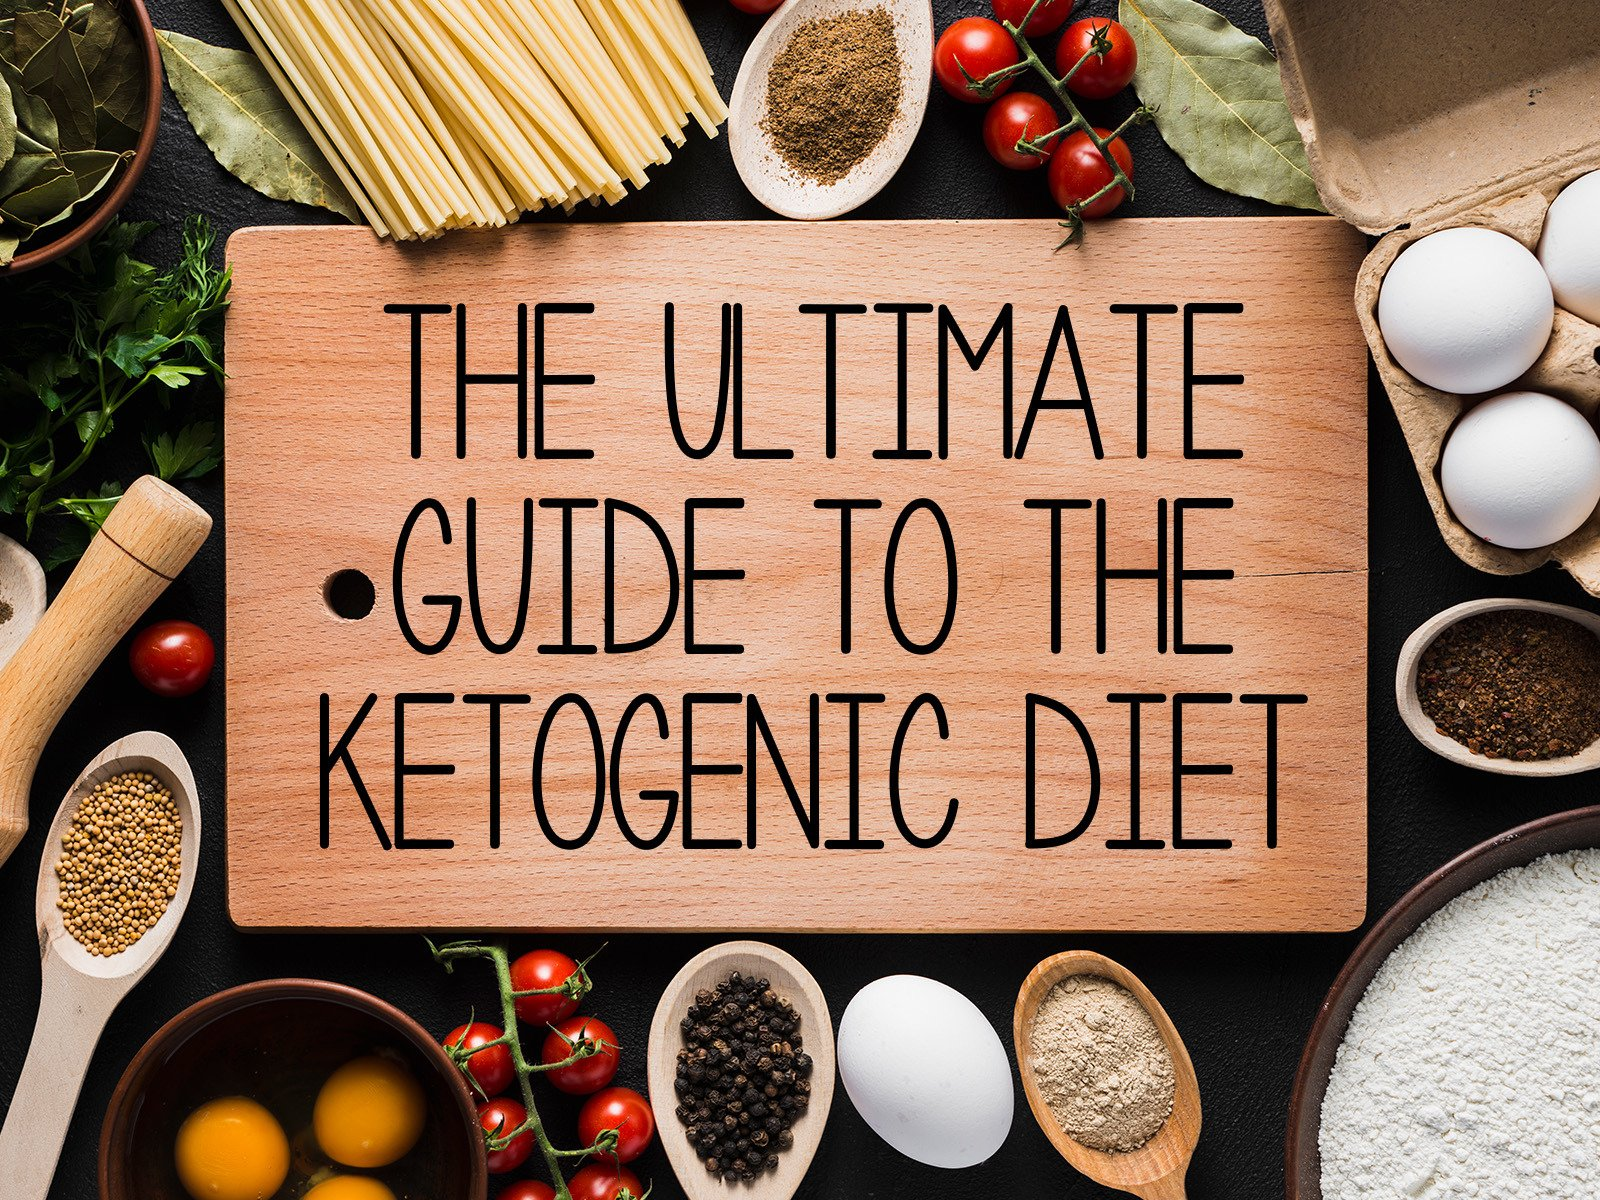 The Ultimate Guide To The Ketogenic Diet - Season 1